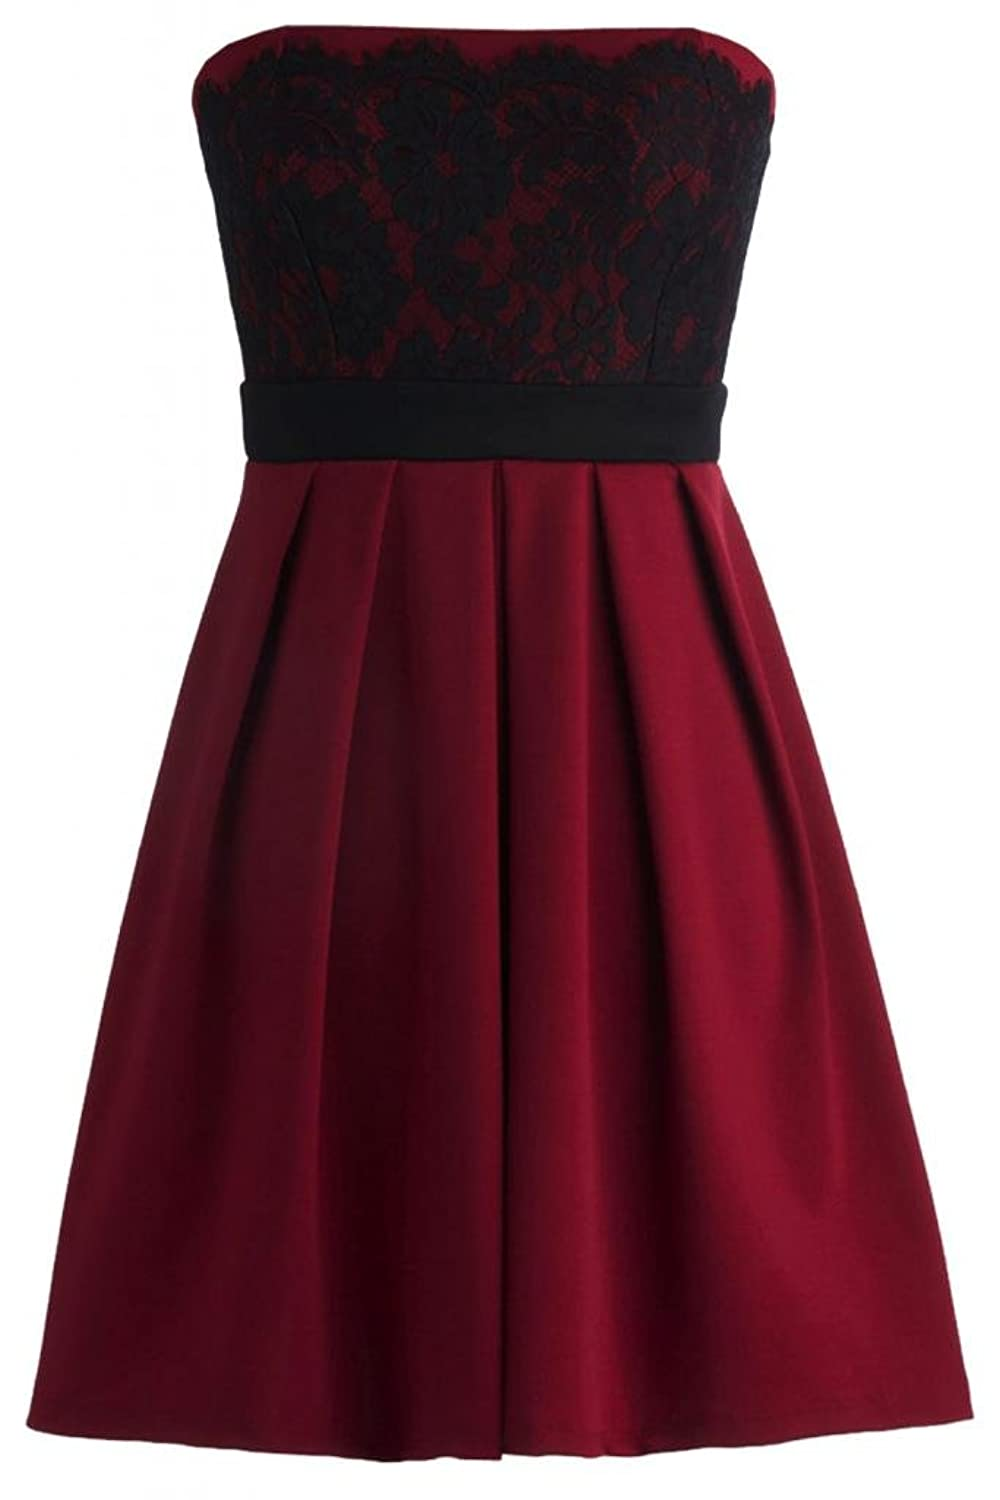 Sunvary Charming Satin A-Line Strapless Short Lace Cocktail Homecoming Dresses